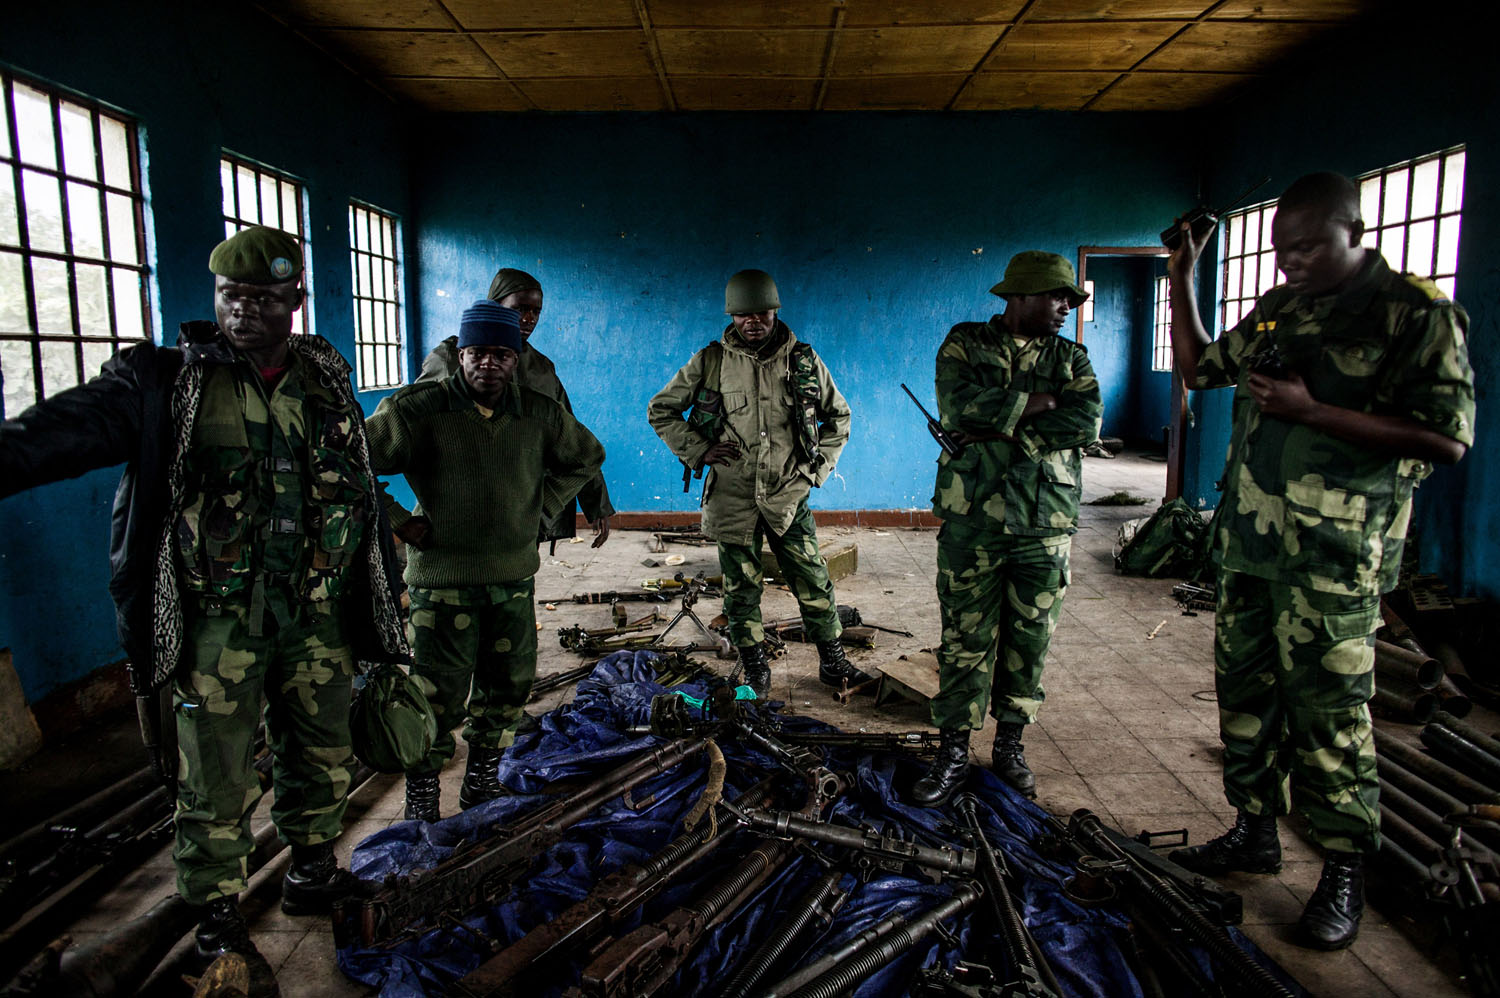 Congolese soldiers inspect munitions abandoned by M23 rebels at a former M-23 military base in Rumangabo, north of Goma.